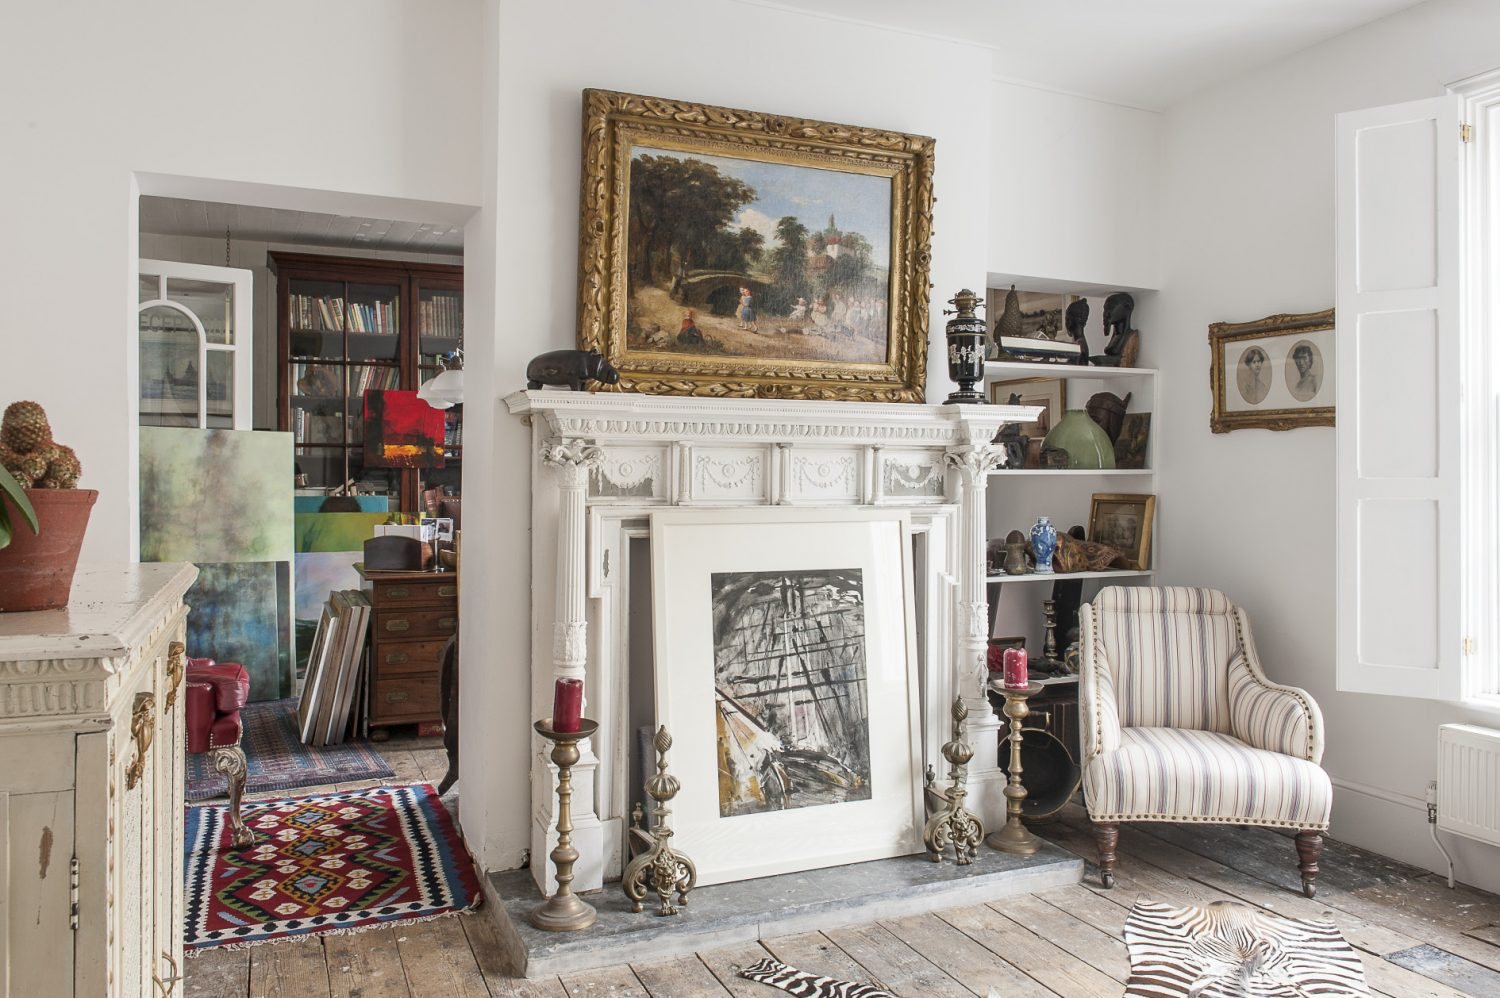 A matching pair of Adam fireplaces have been installed, one painted dark grey, the other white